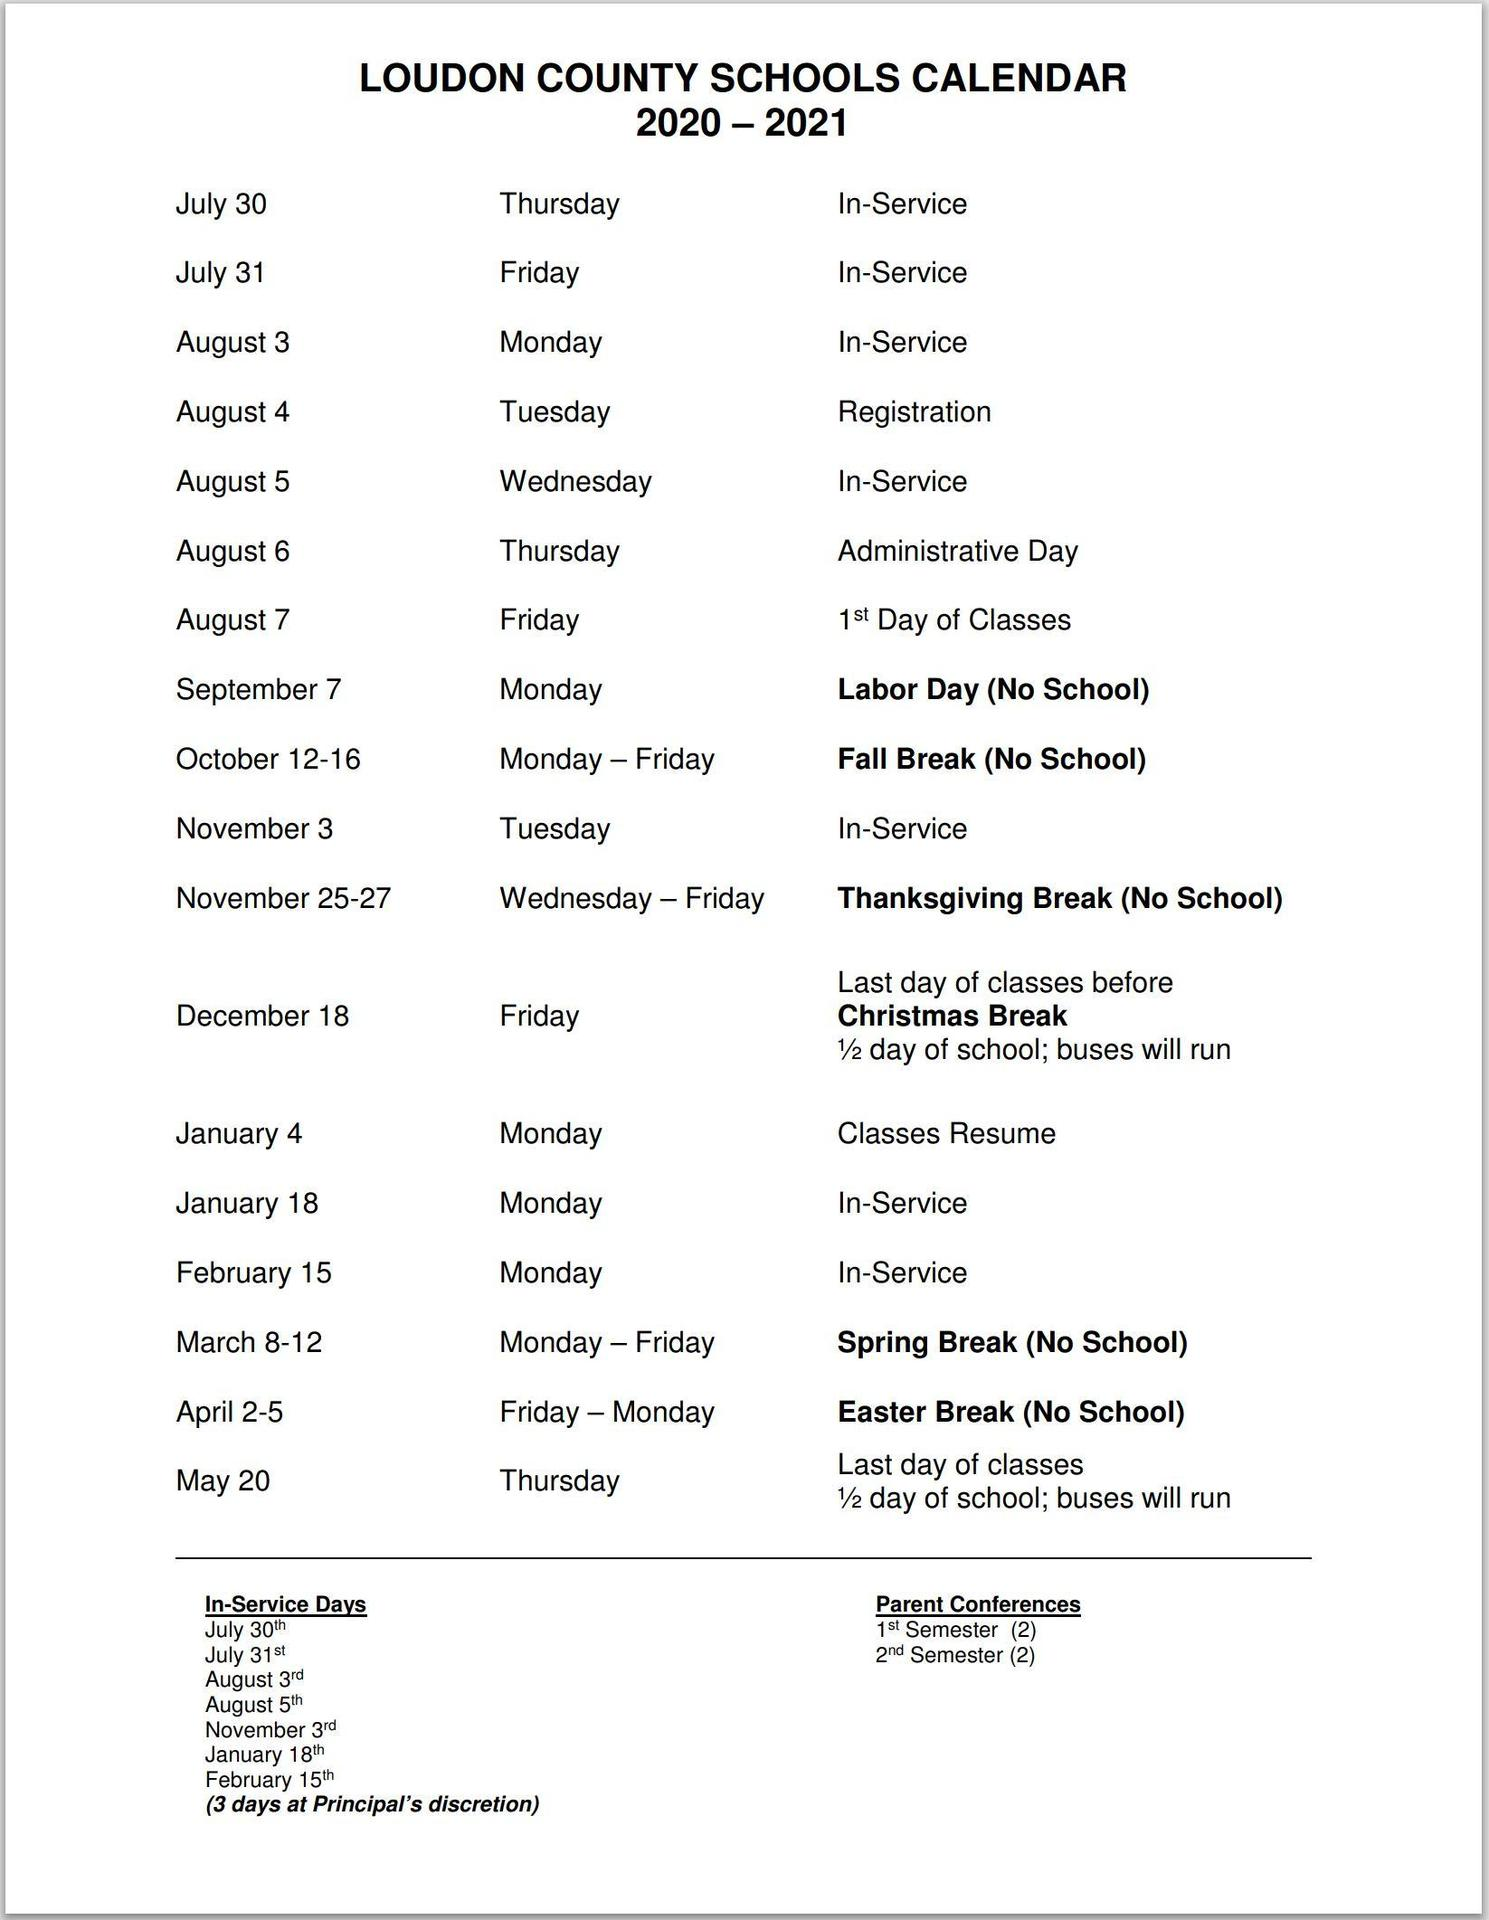 Print School Year Calendar – I Want To – Loudon County Schools